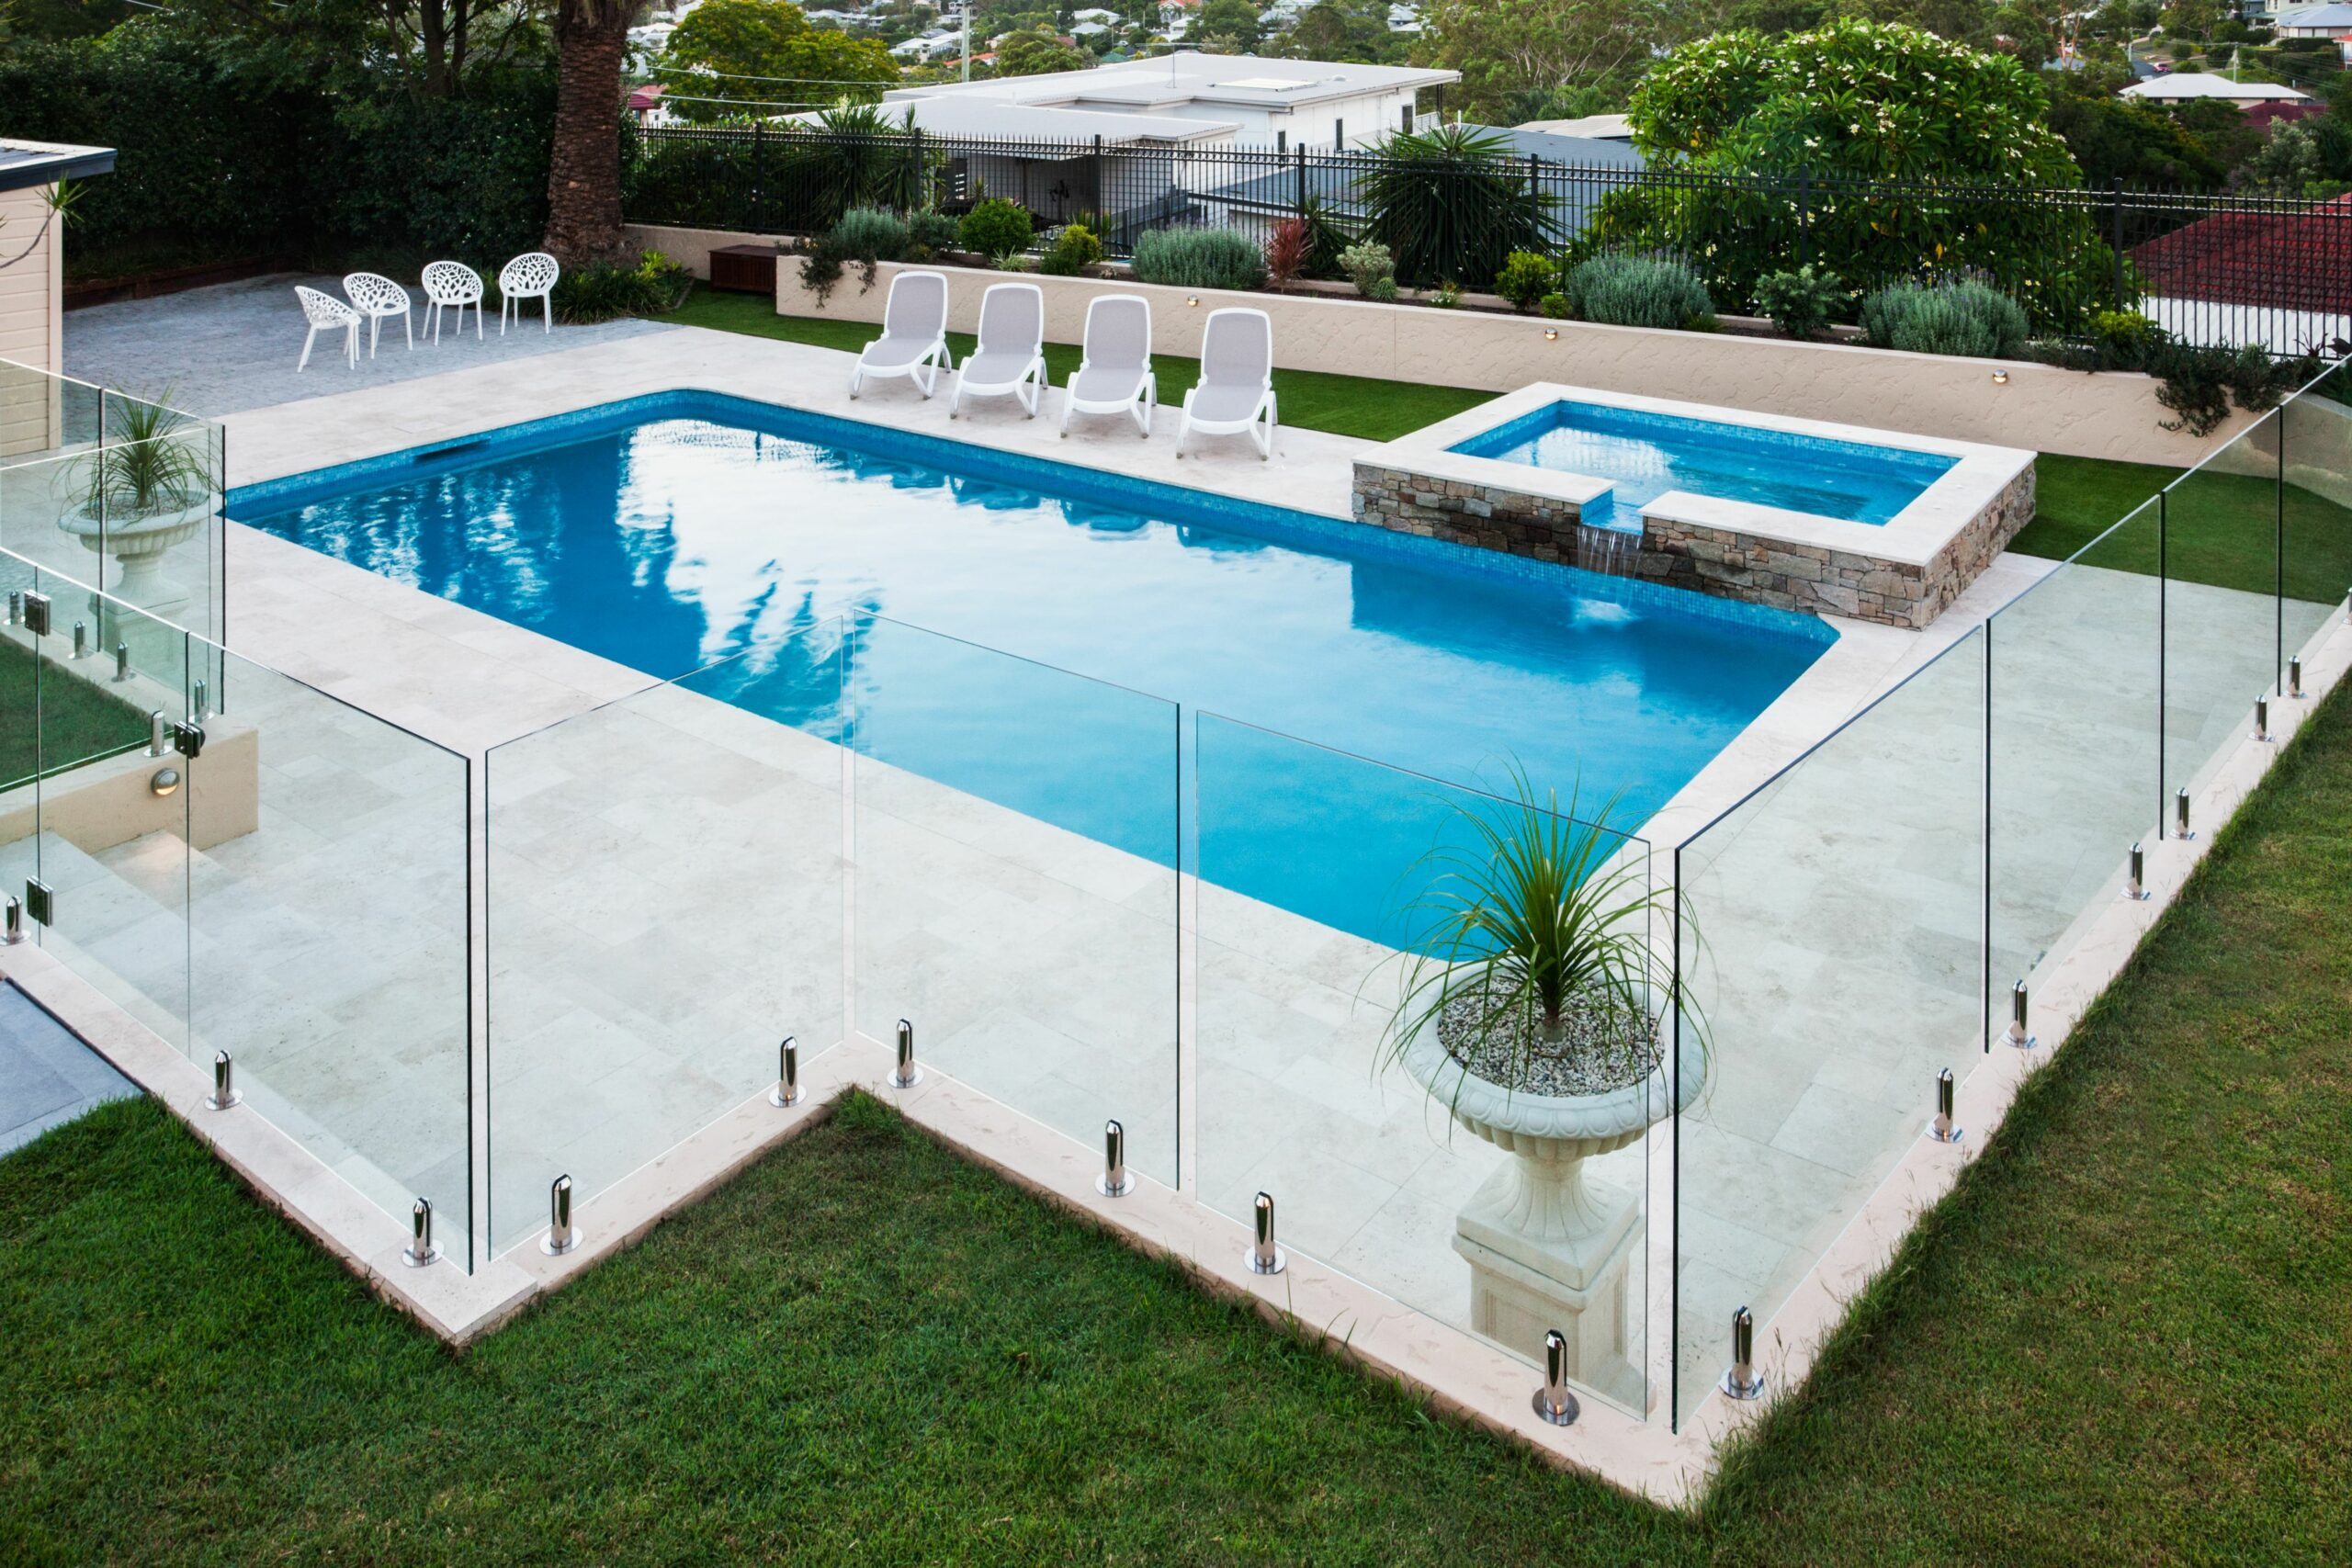 11 Pool Fence Ideas That Will Upgrade Your Yard - pool upgrade ideas